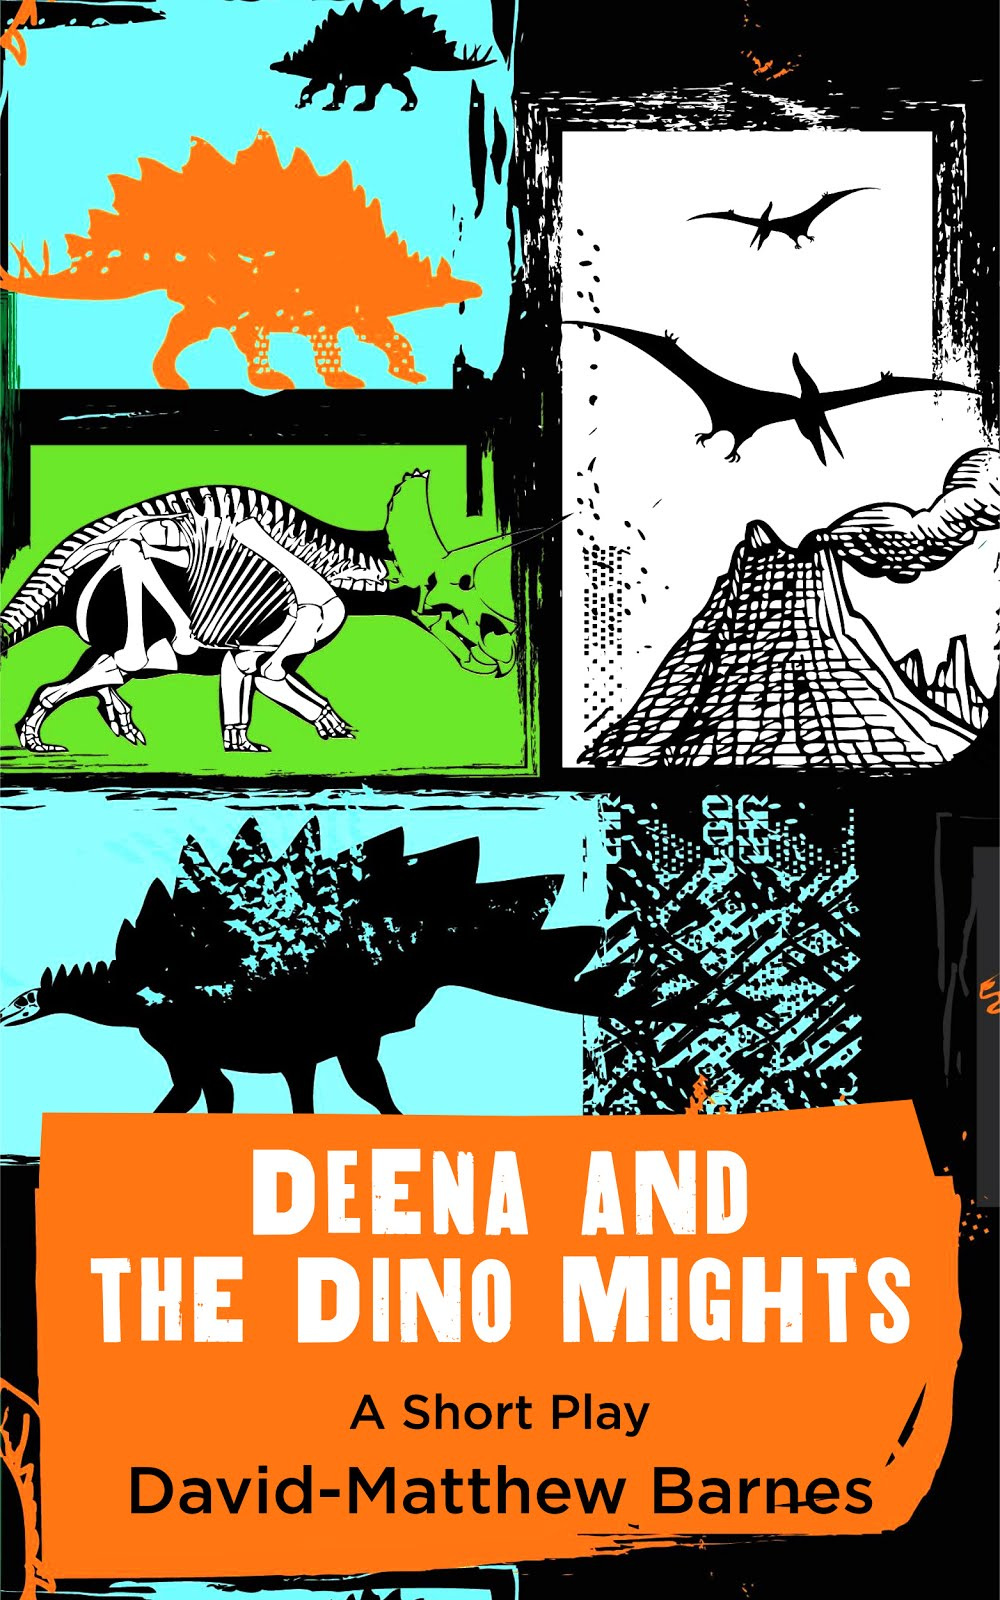 Deena and the Dino Mights